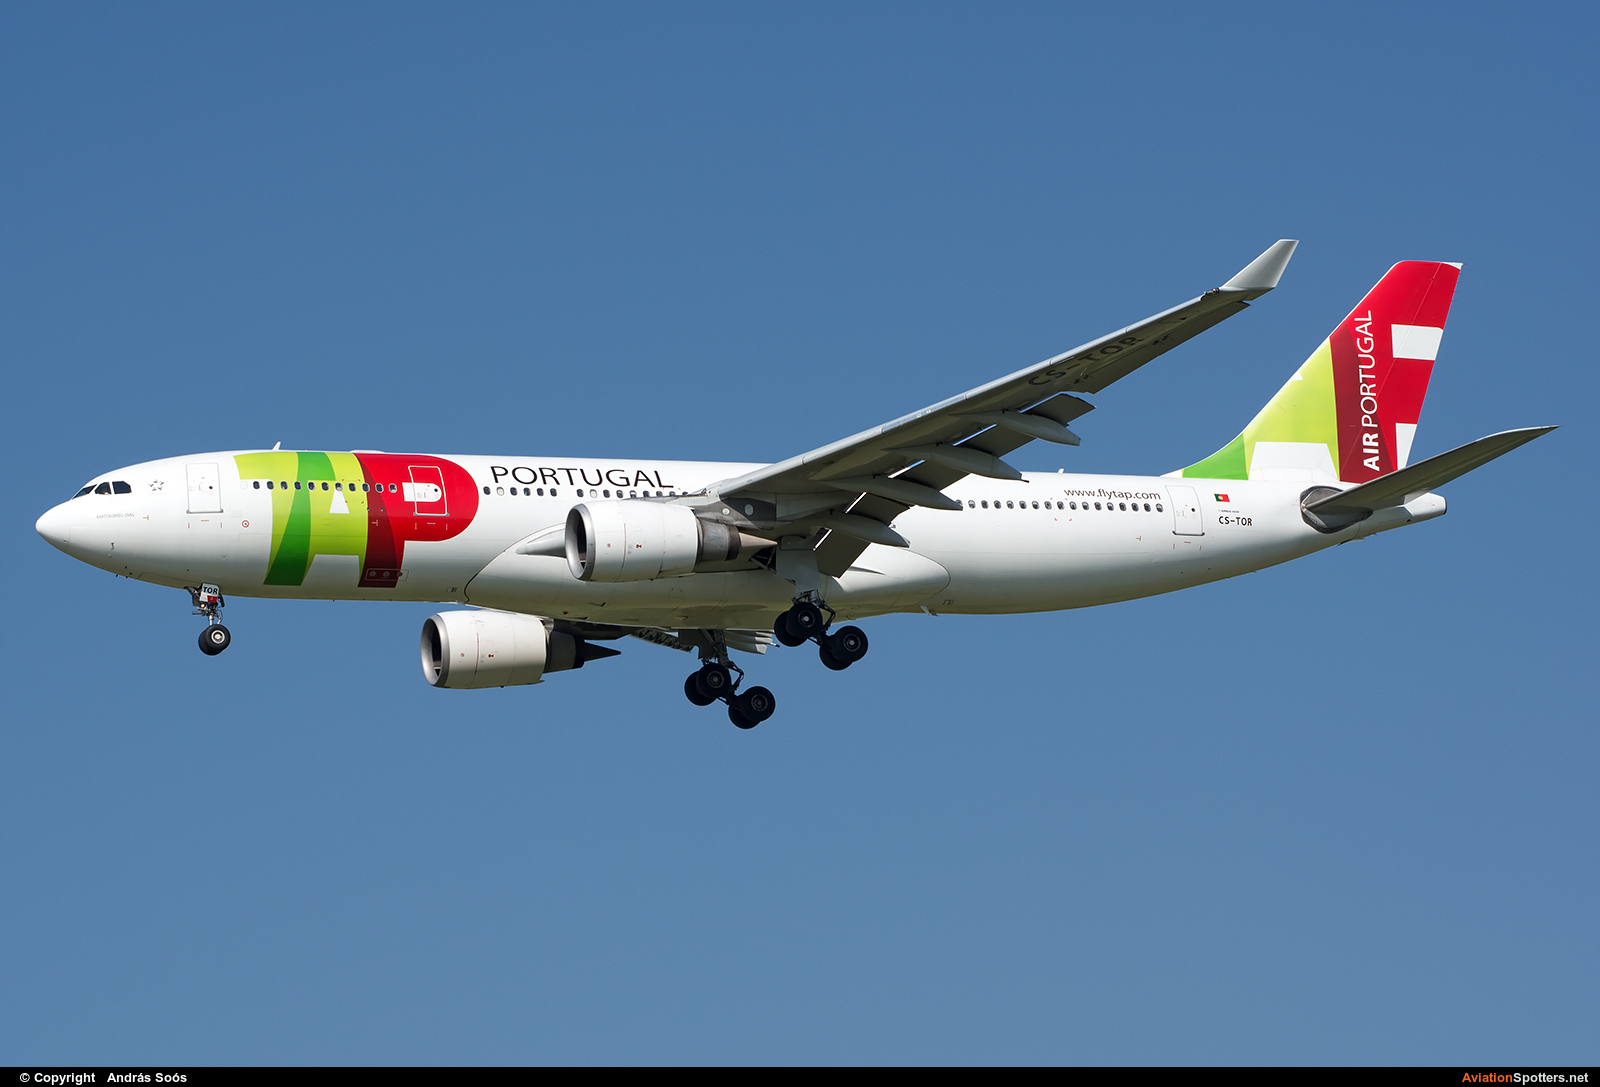 TAP Portugal  -  A330-200  (CS-TOR) By András Soós (sas1965)